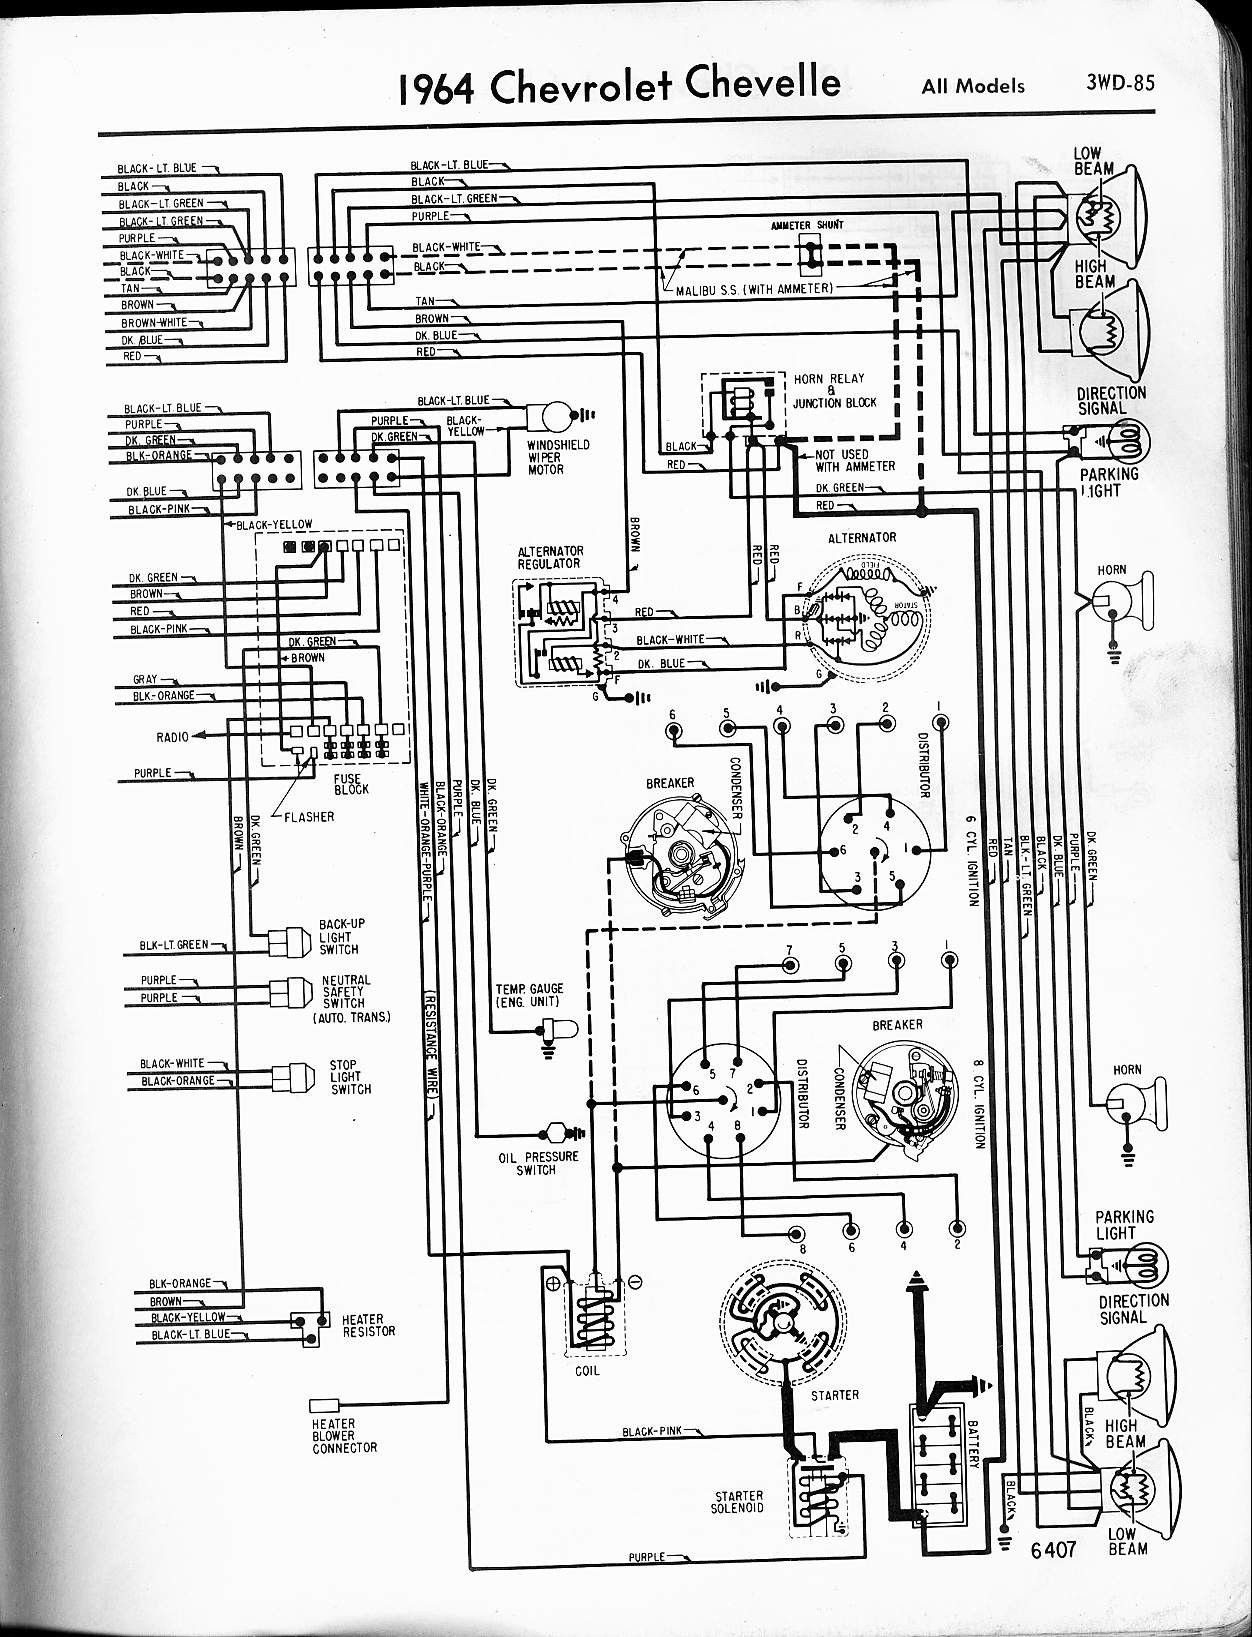 1994 Dodge Dakota Wiring Diagram from detoxicrecenze.com